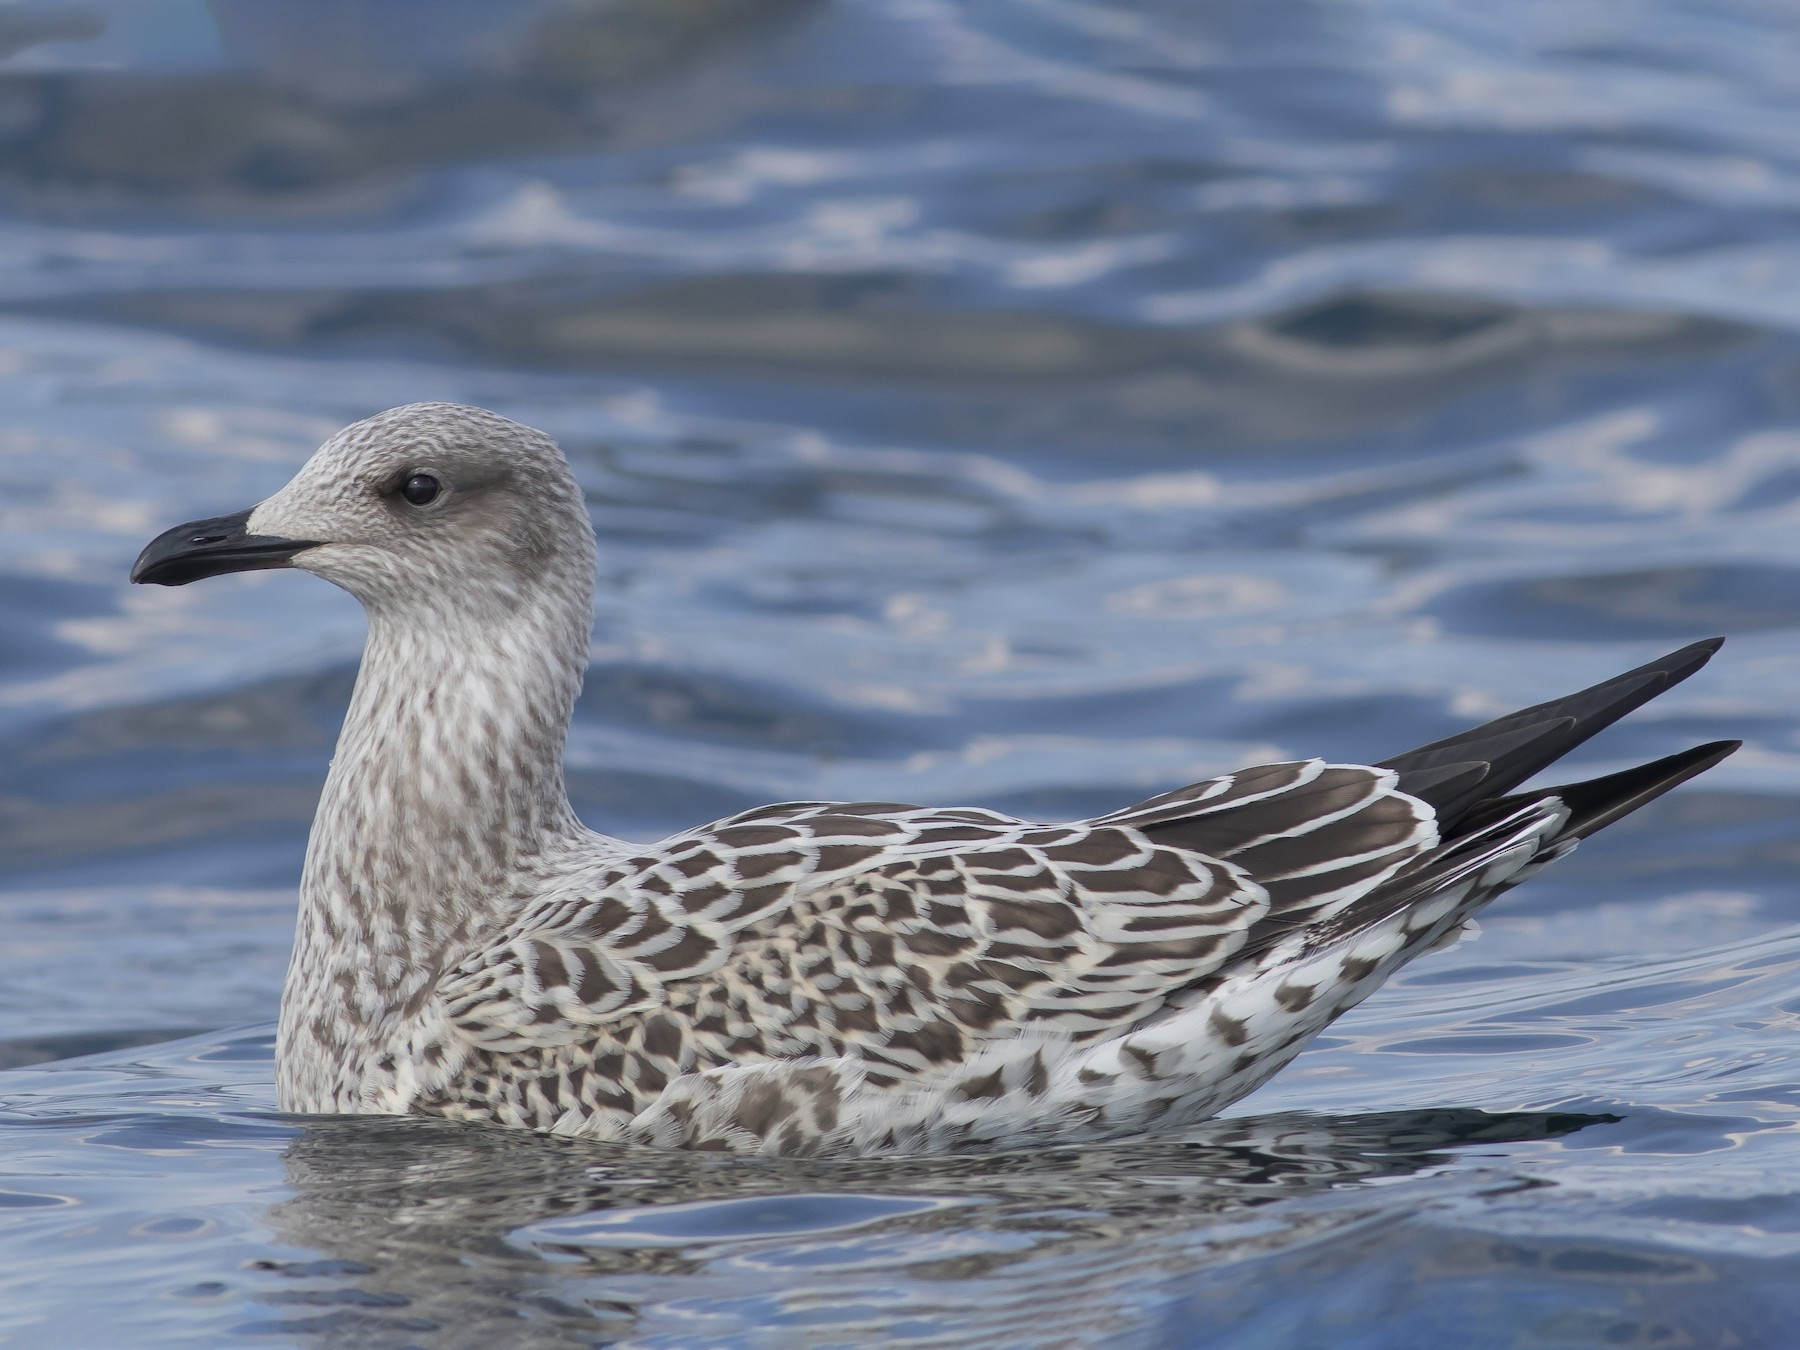 Lesser Black-backed Gull - Caleb Putnam